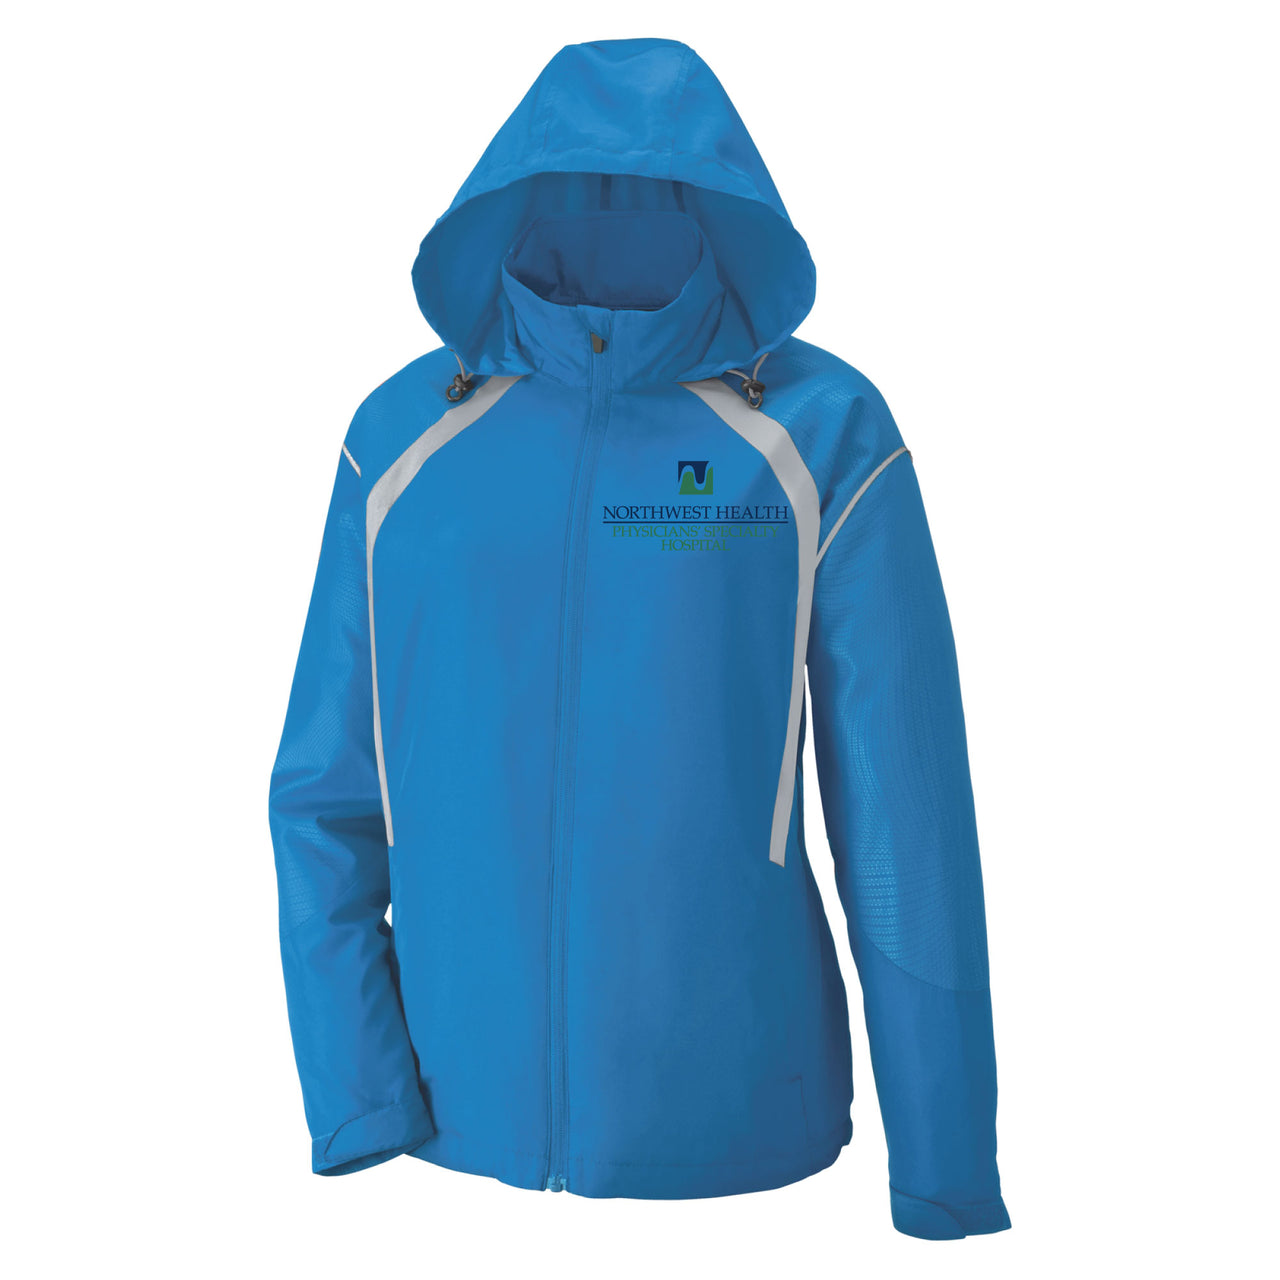 PSH Ladies NorthEnd Sirius Lightweight Logo Jacket